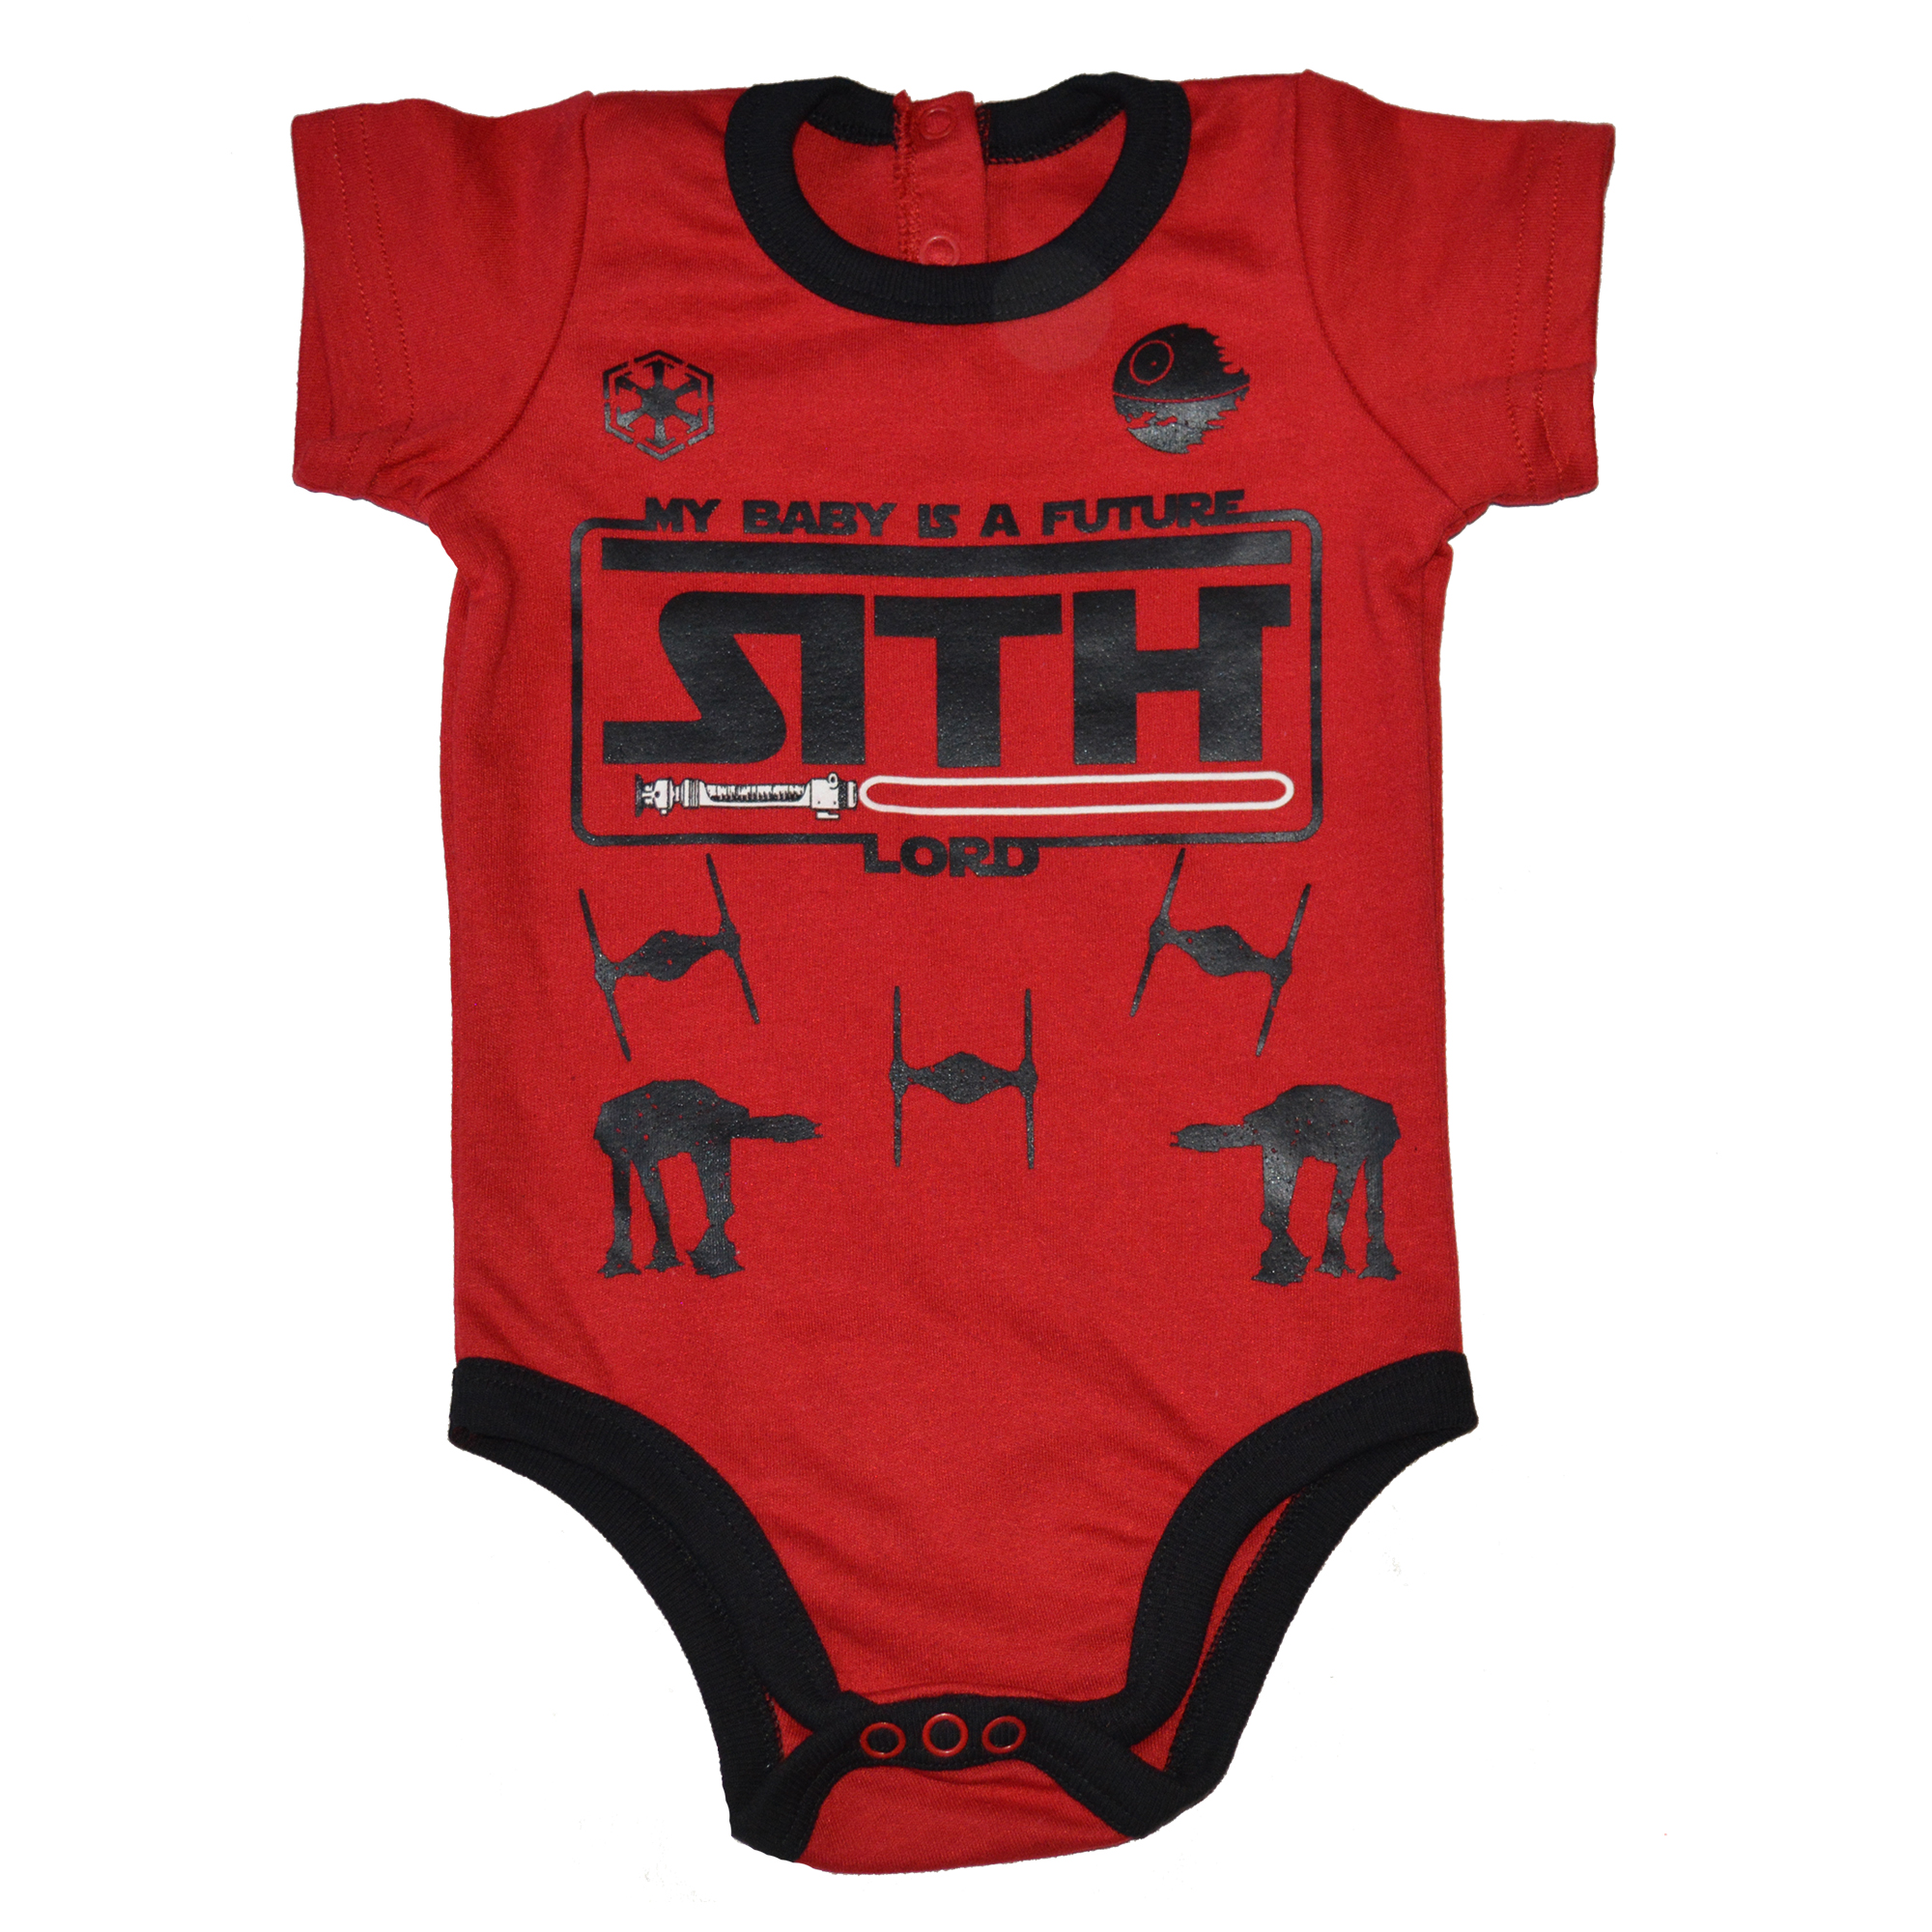 Sith red